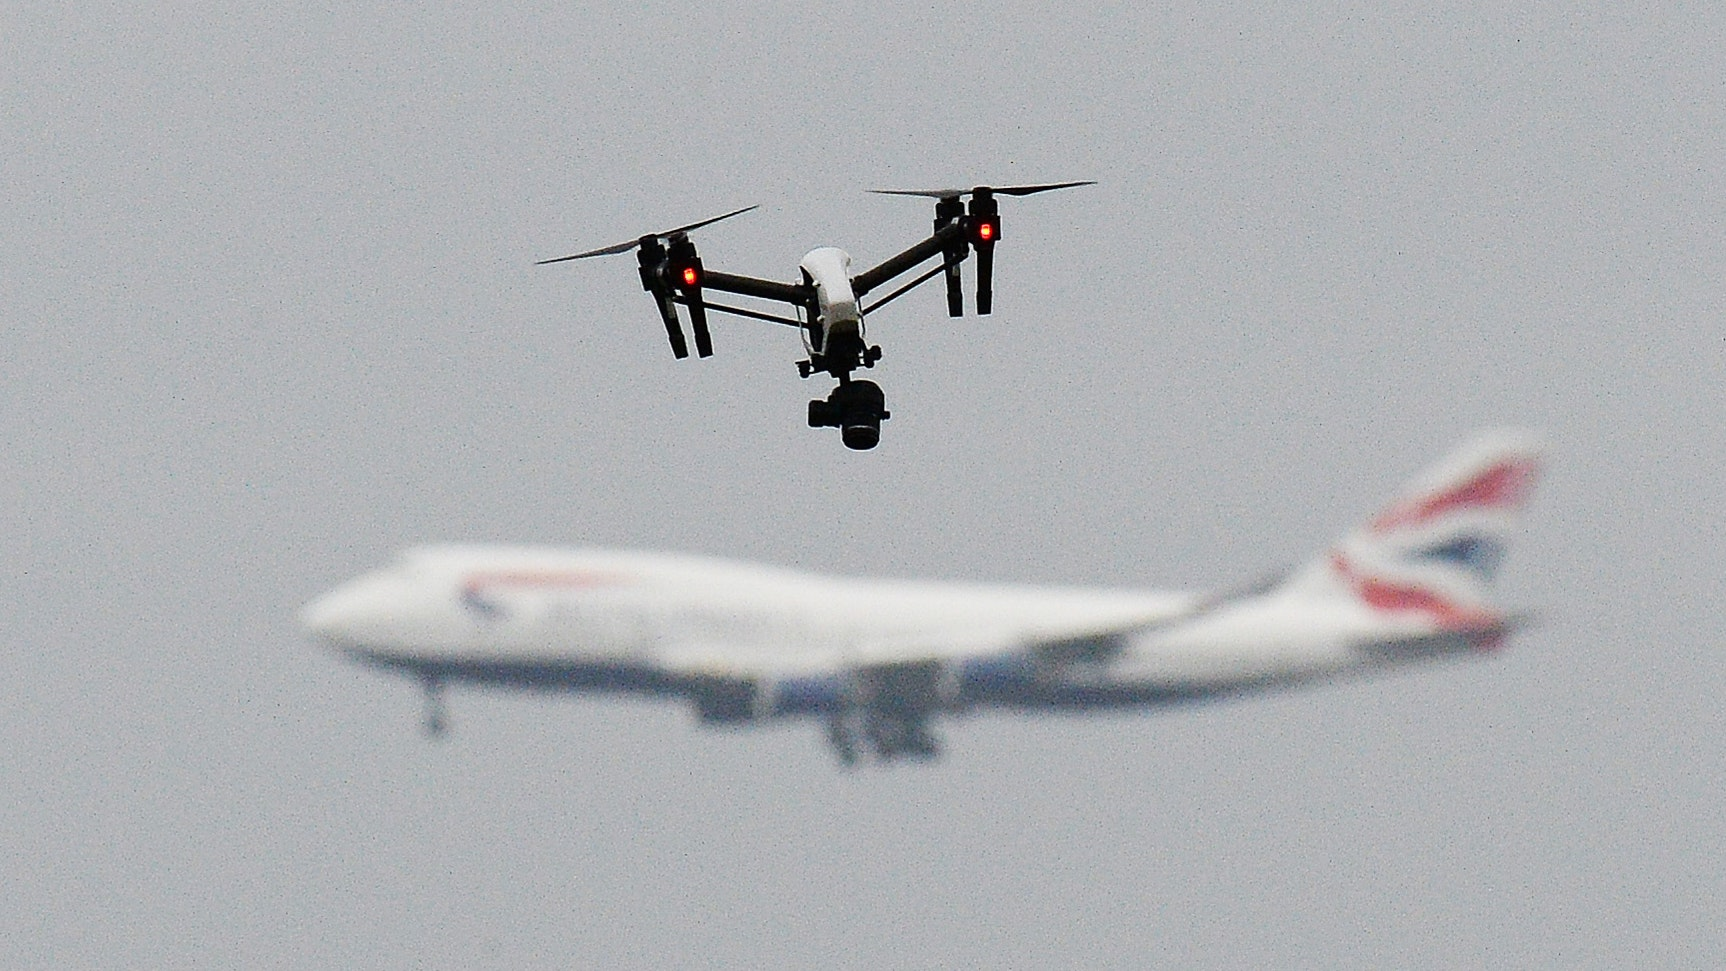 Heathrow suspends departures after drone spotted